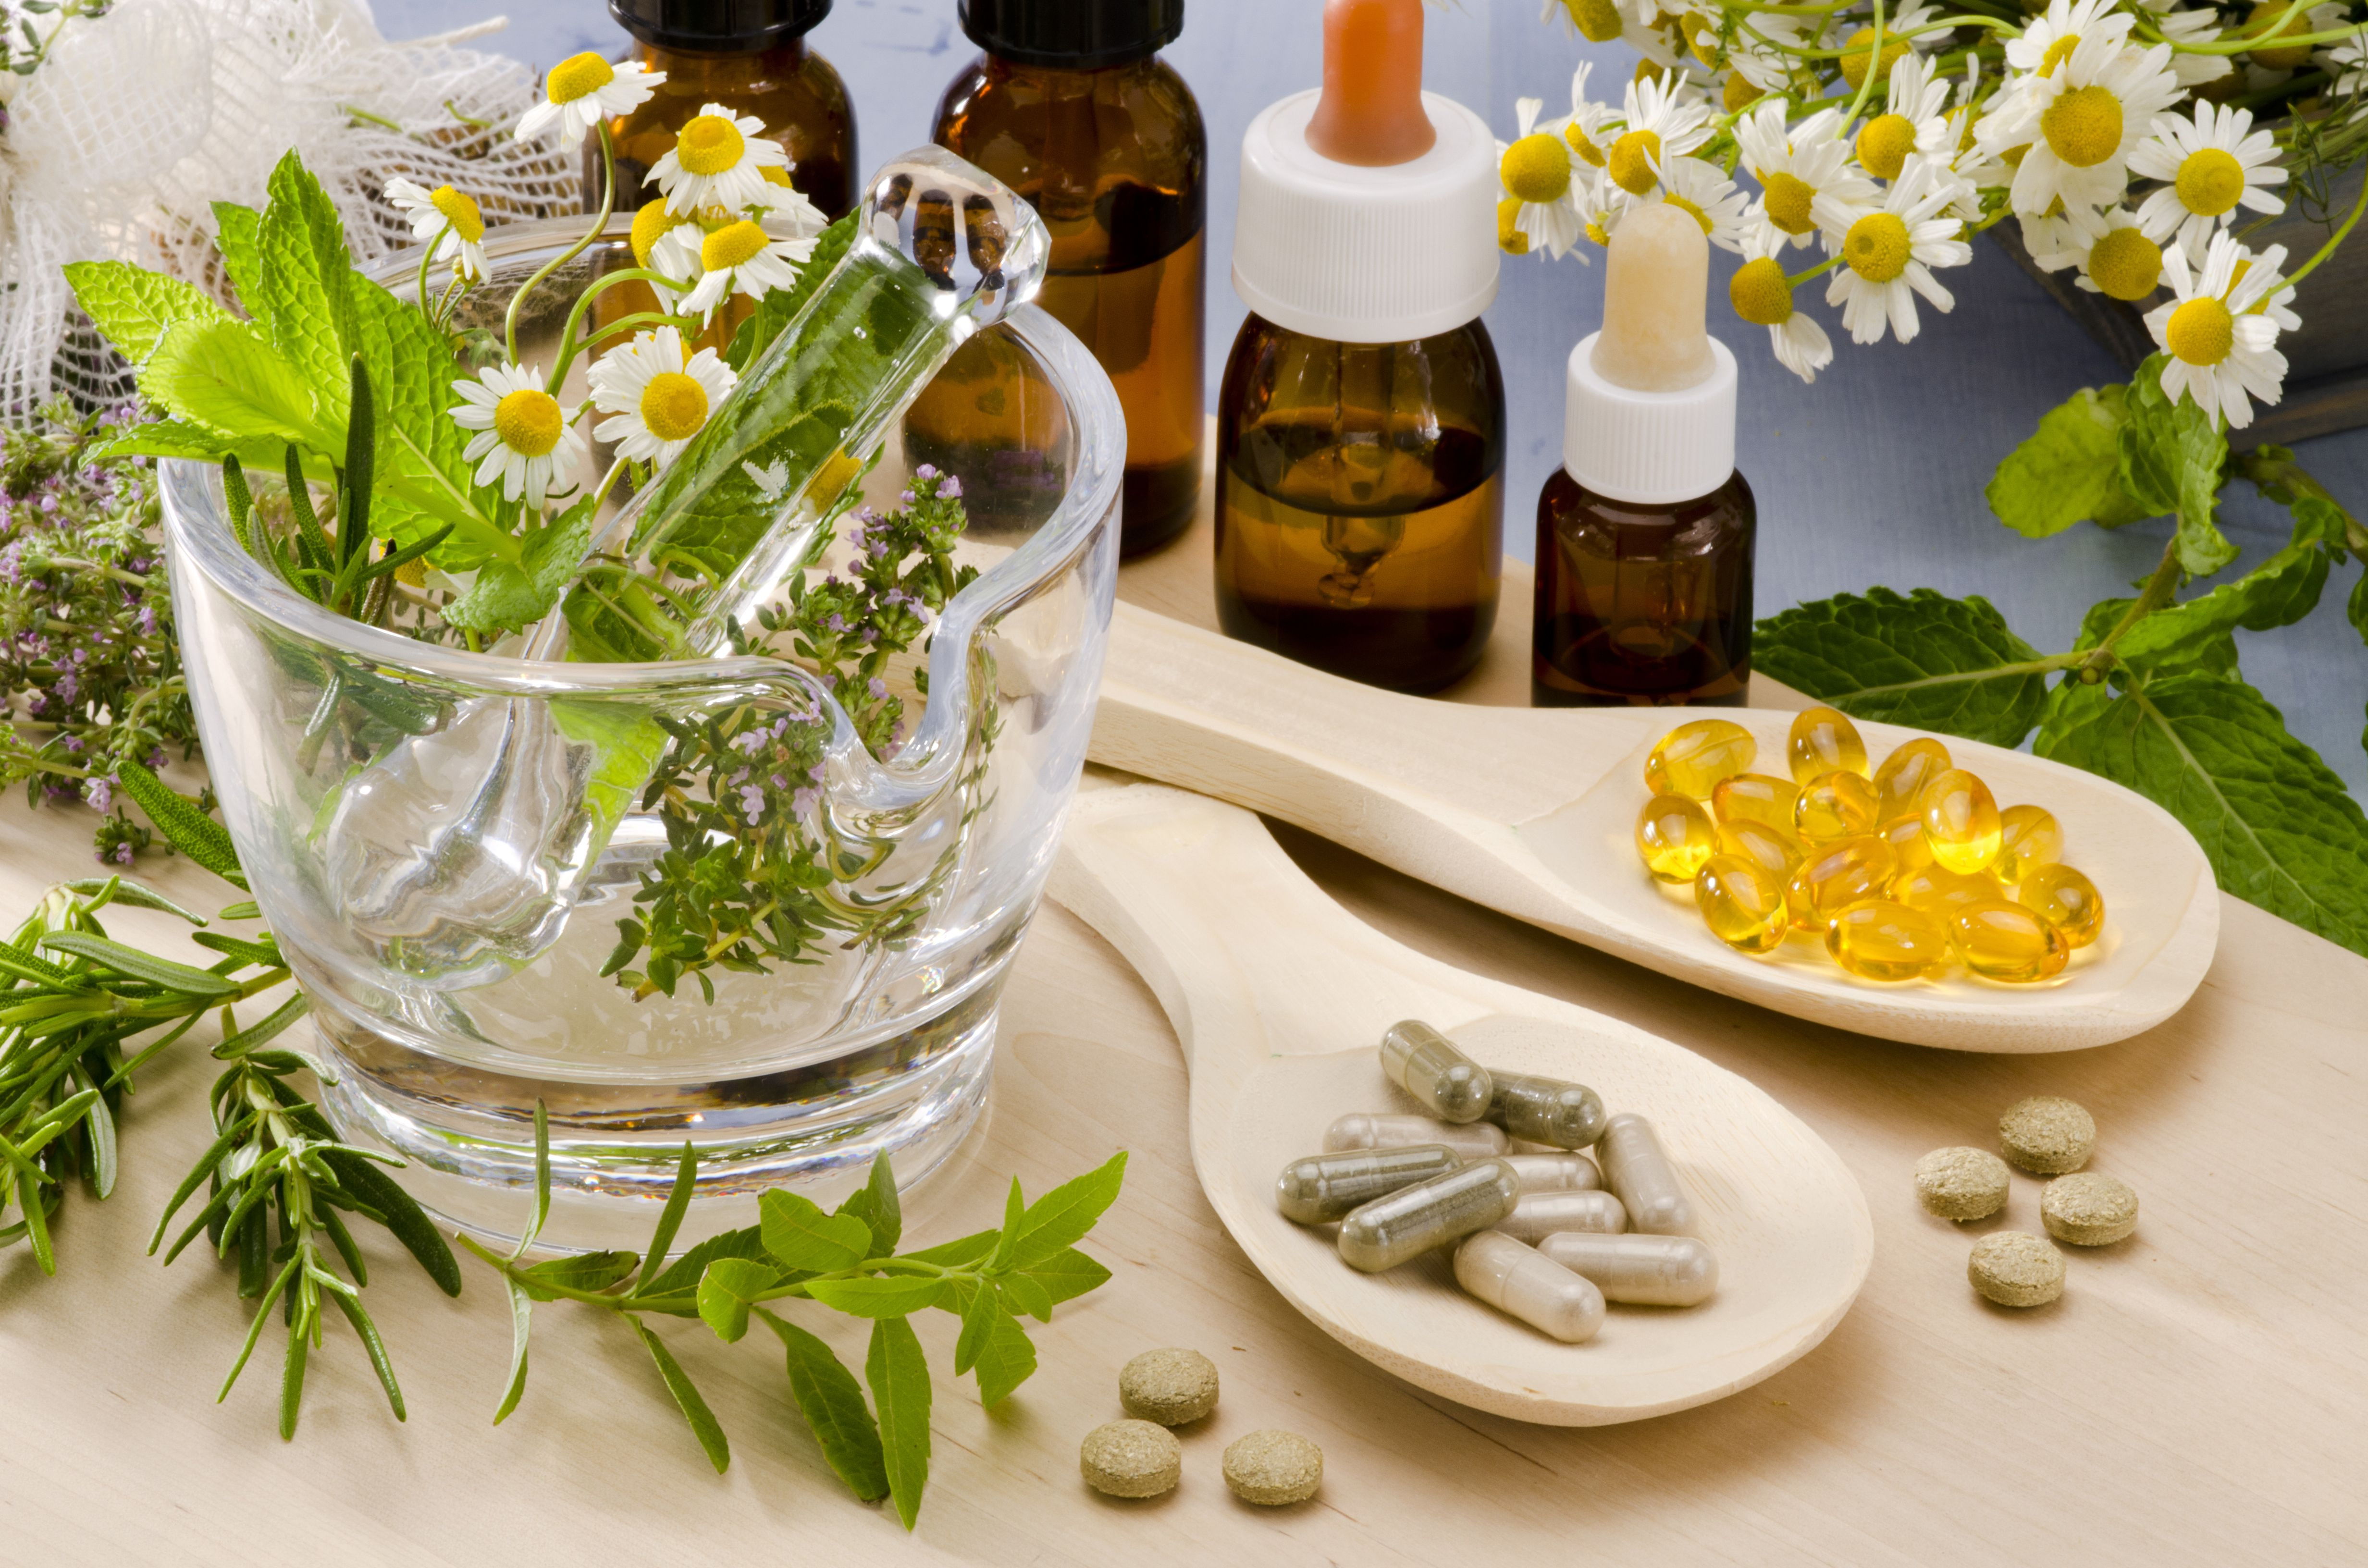 Natural products: Reiki, massages and much more de Destination Pharmacy